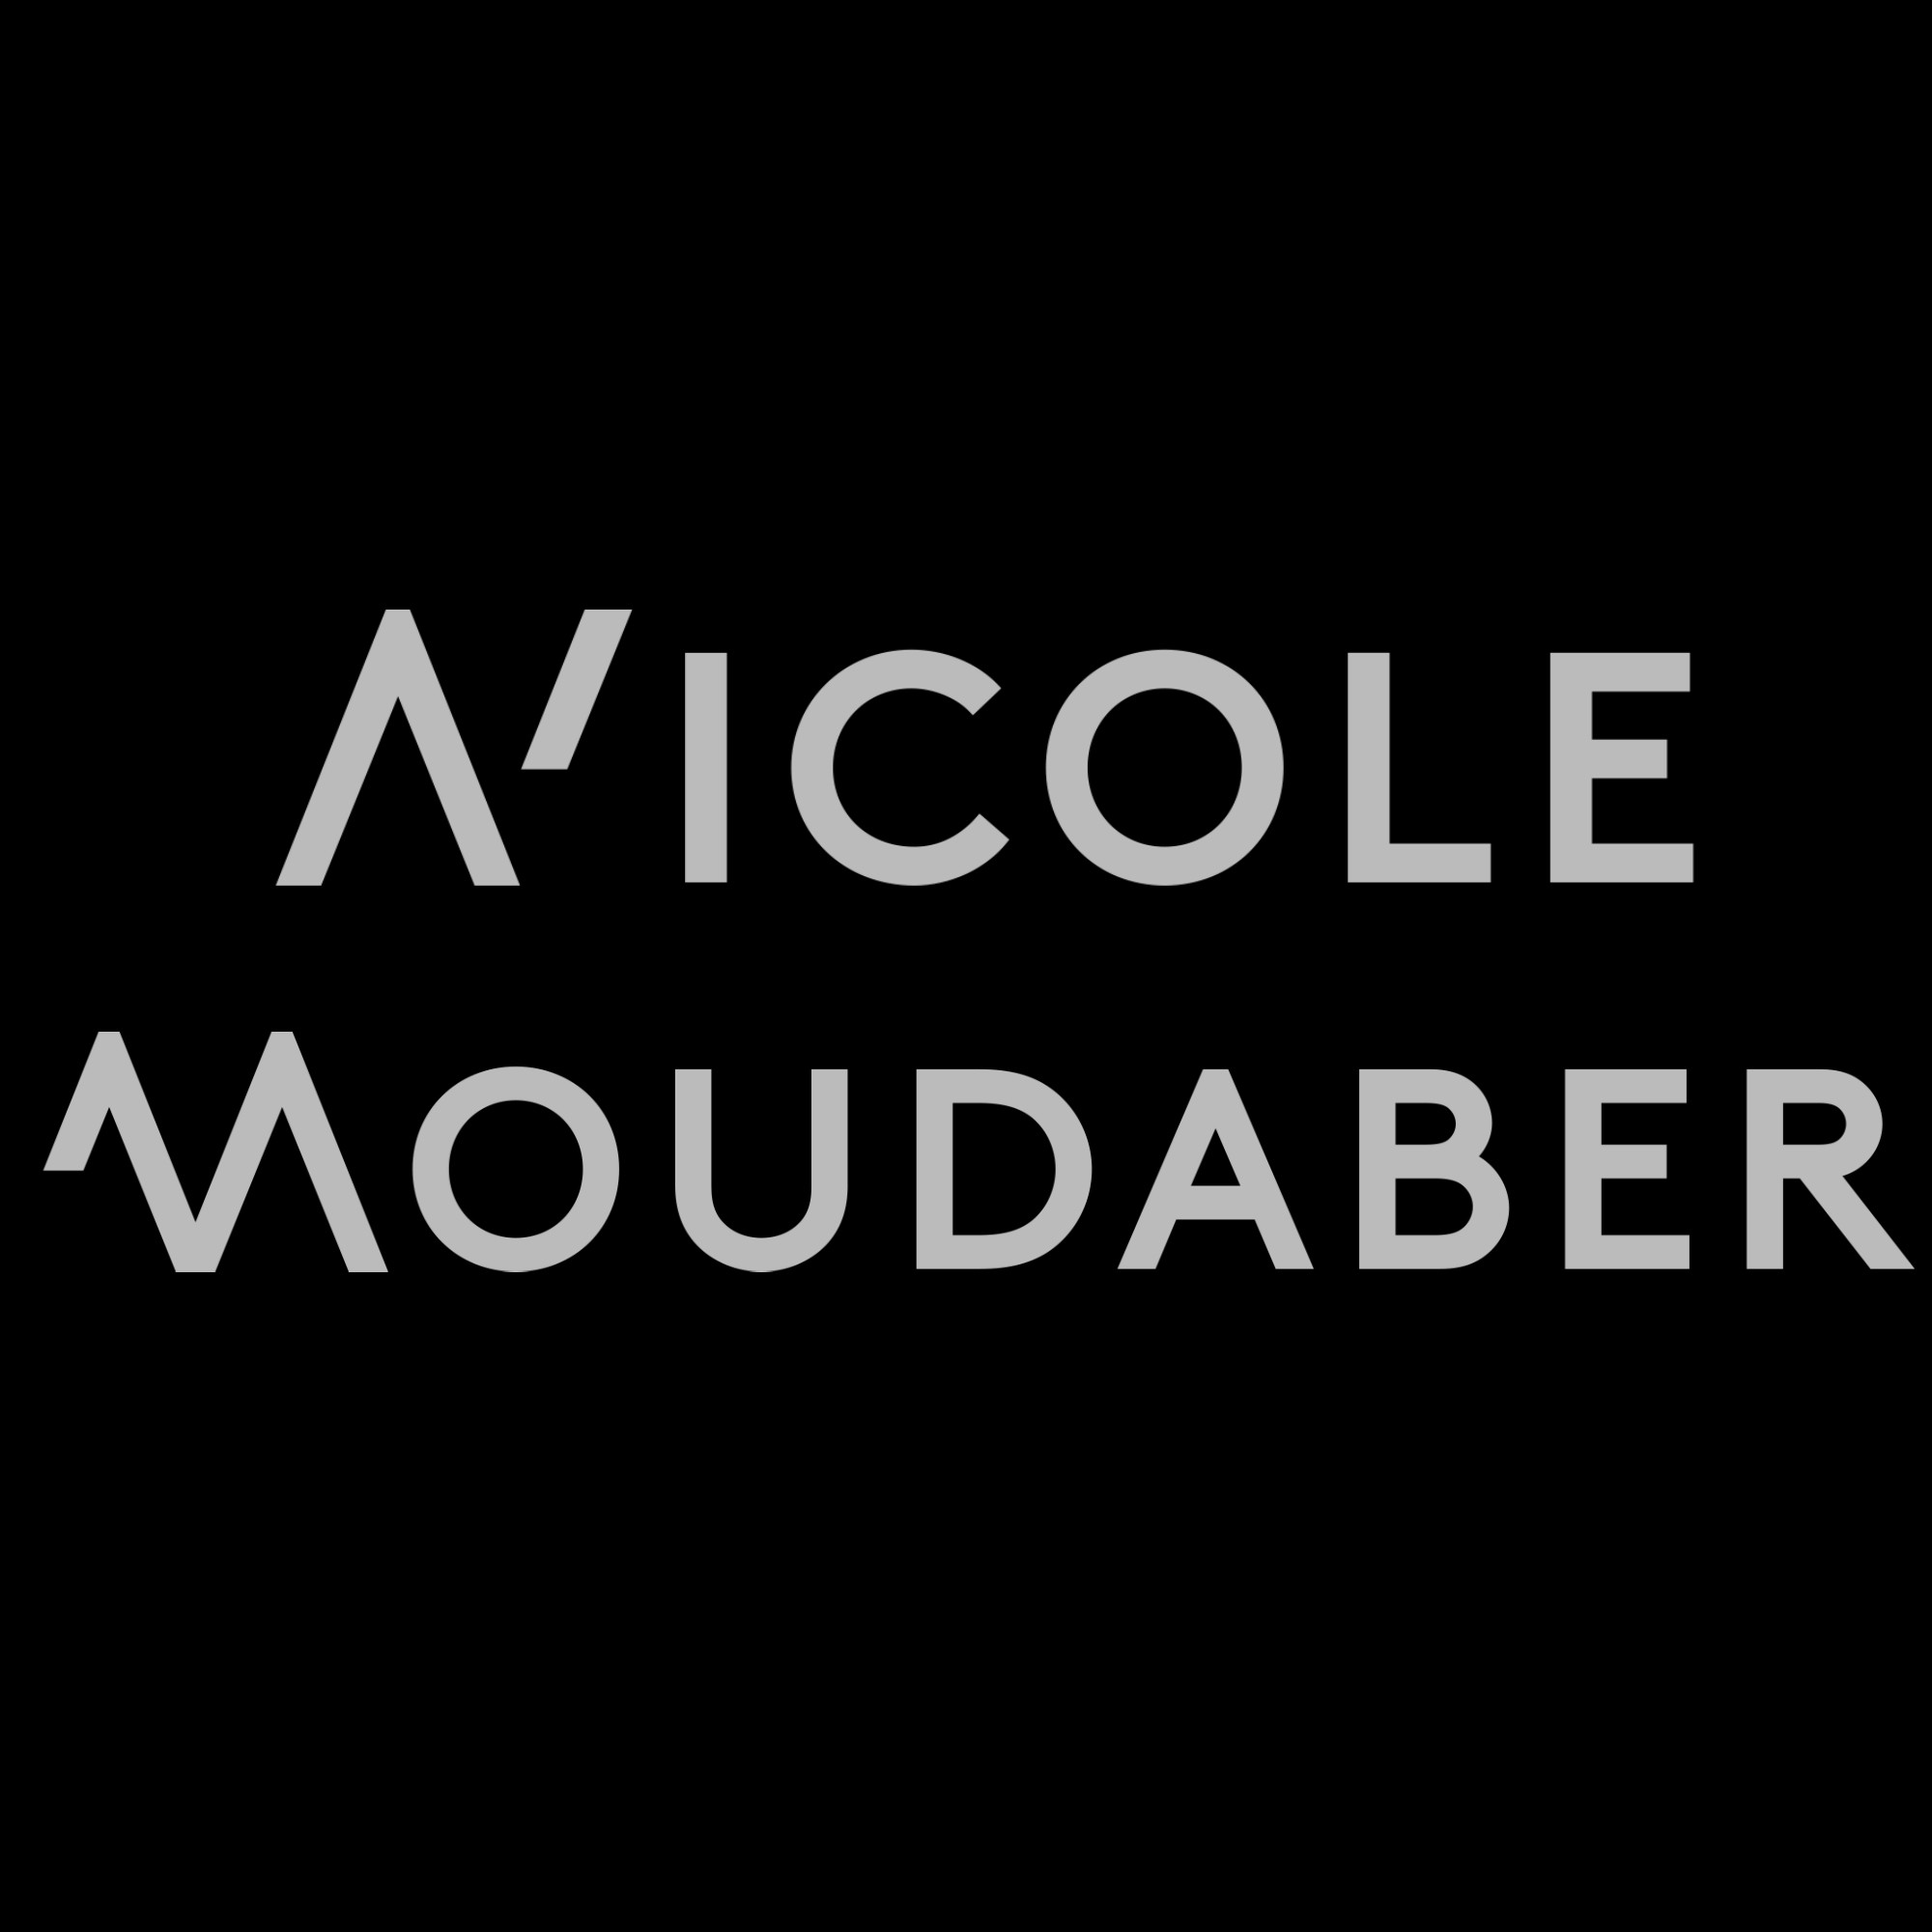 PRIVATE LABEL FT. NICOLE MOUDABER